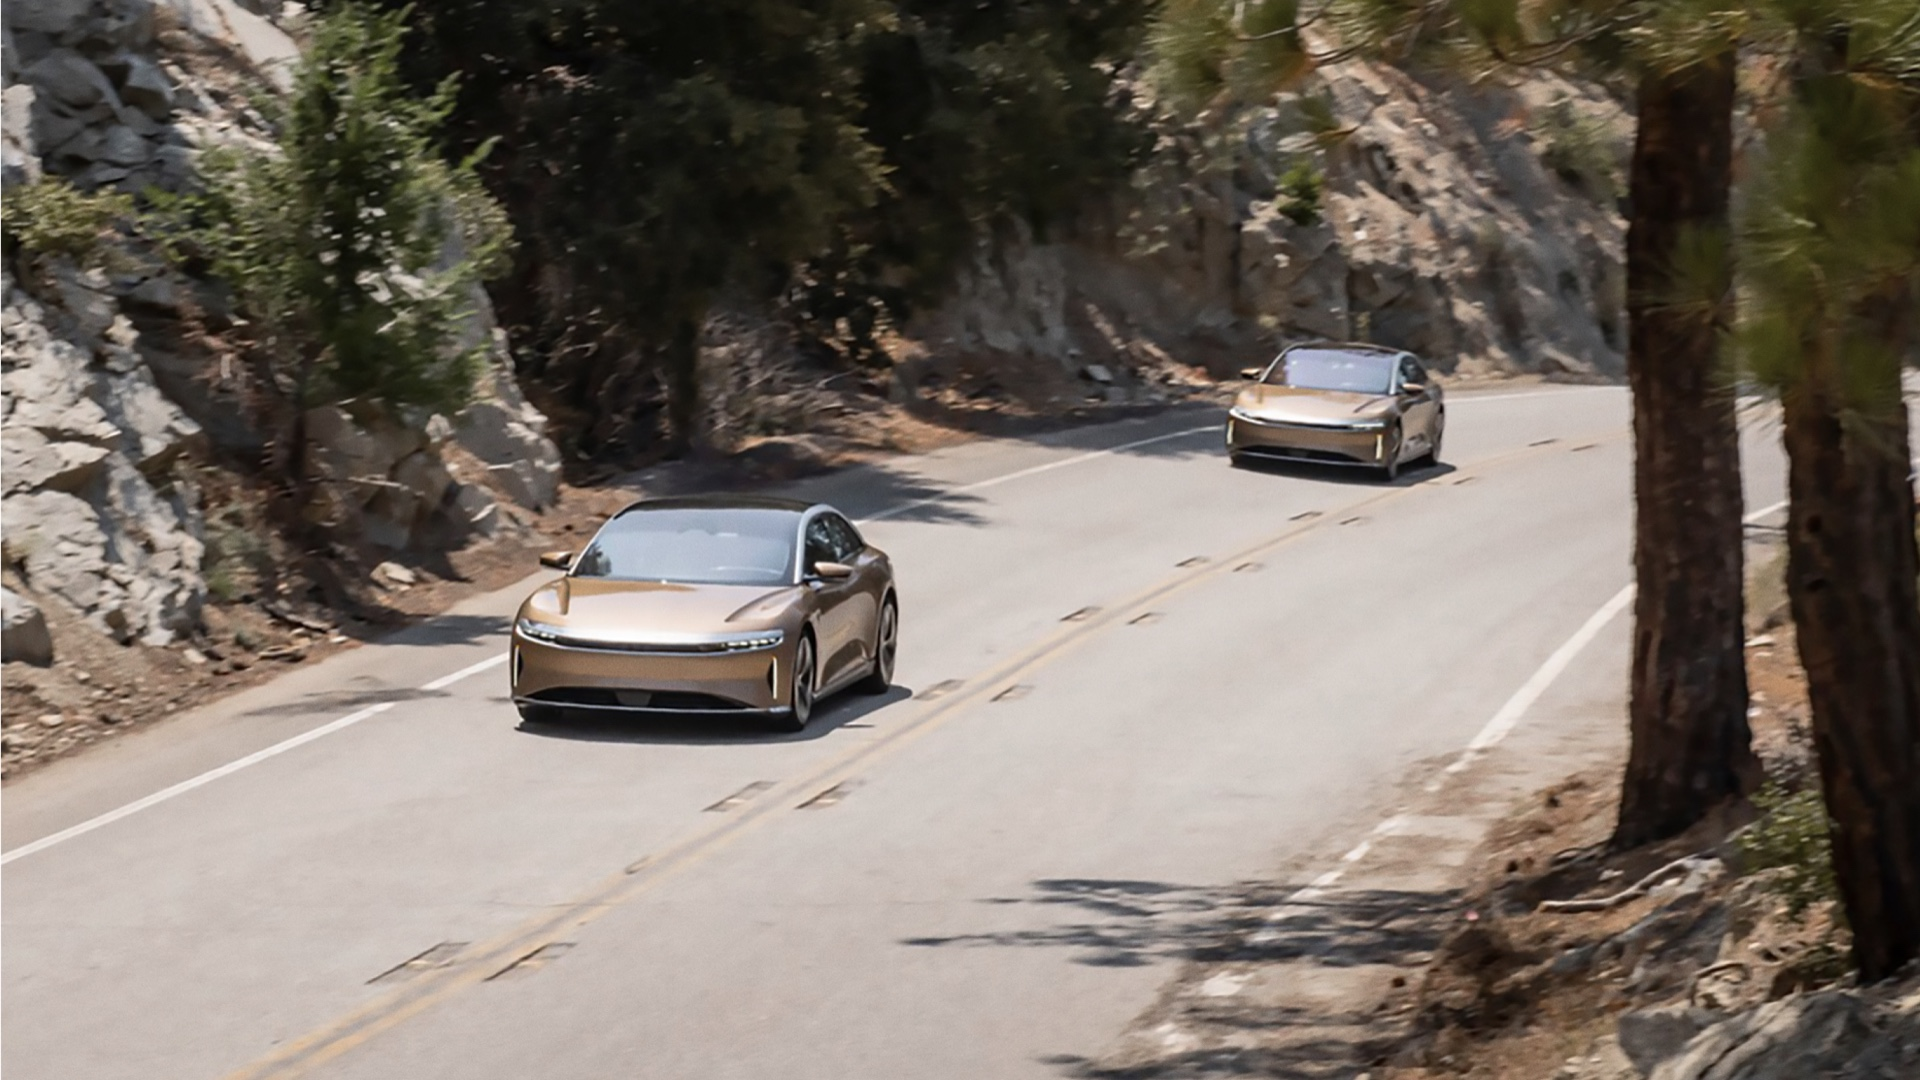 Lucid Air passes Tesla with 520-mile EPA-rated range